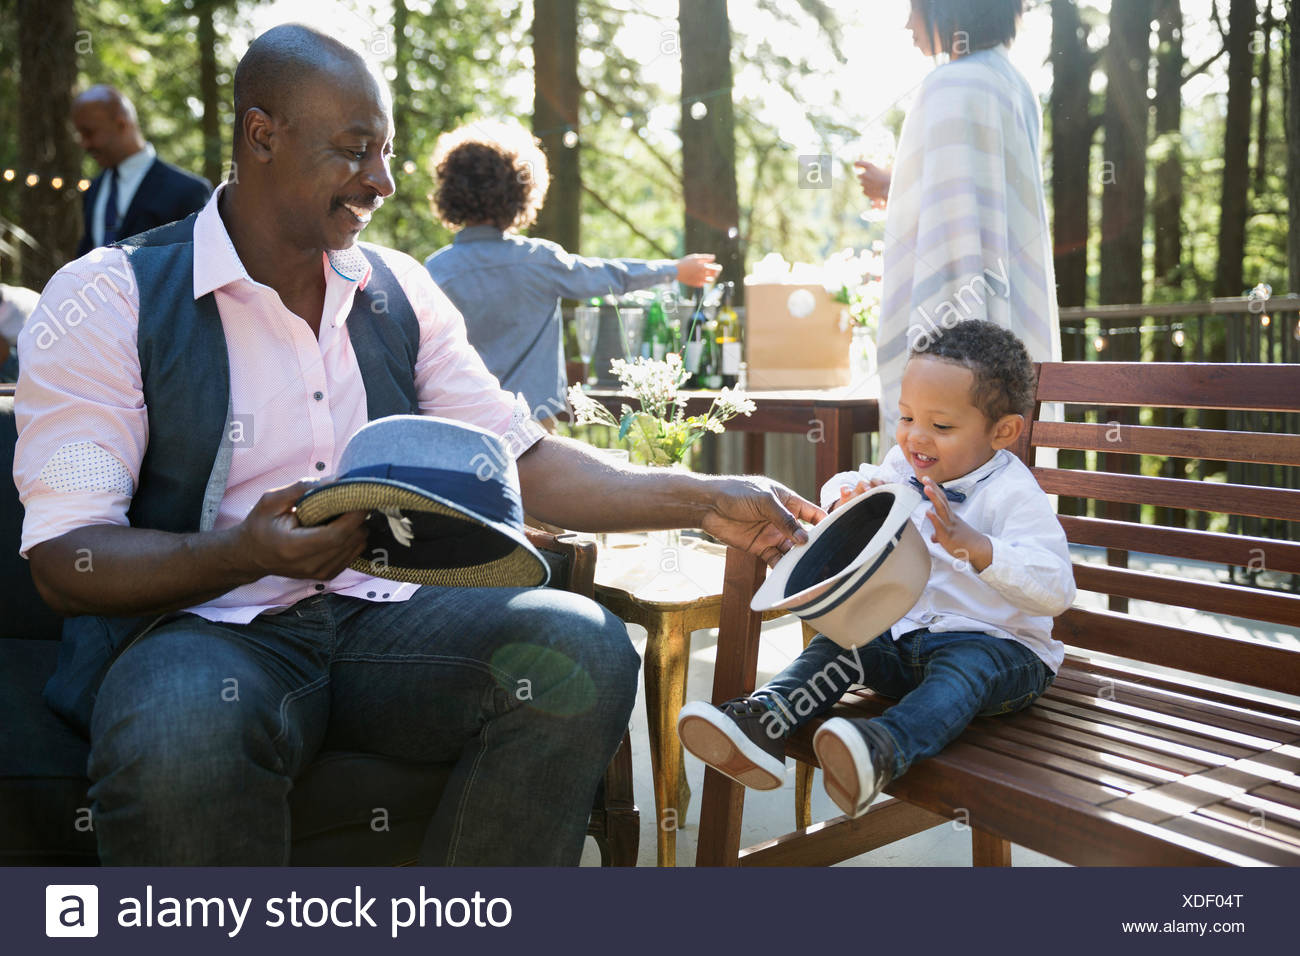 Father and son playing with hats at party on balcony - Stock Image